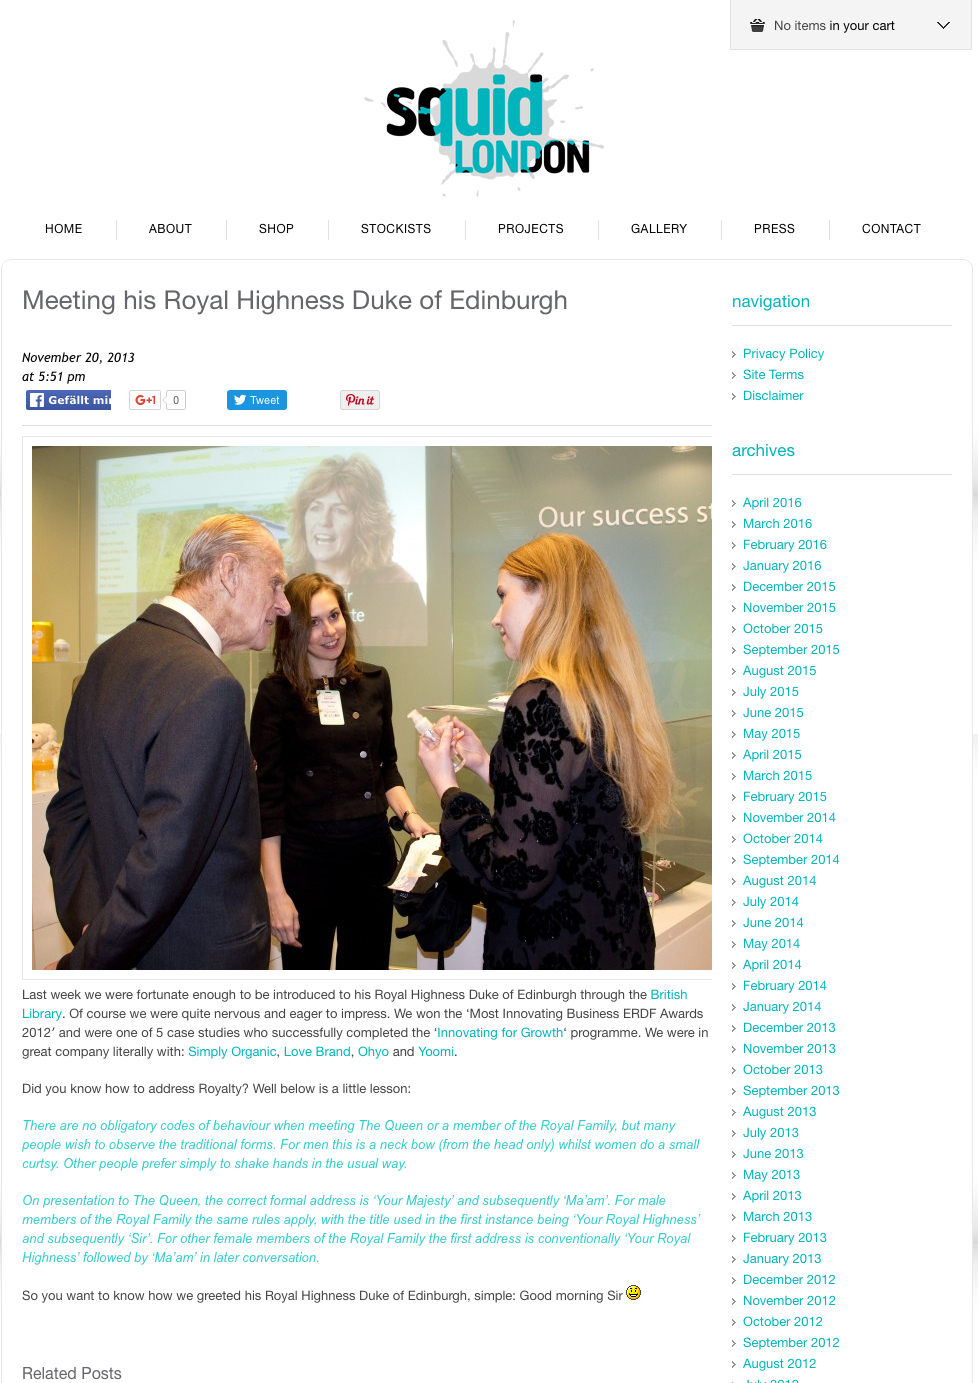 November 2013 Meeting his Royal Highness Duke of Edinburgh